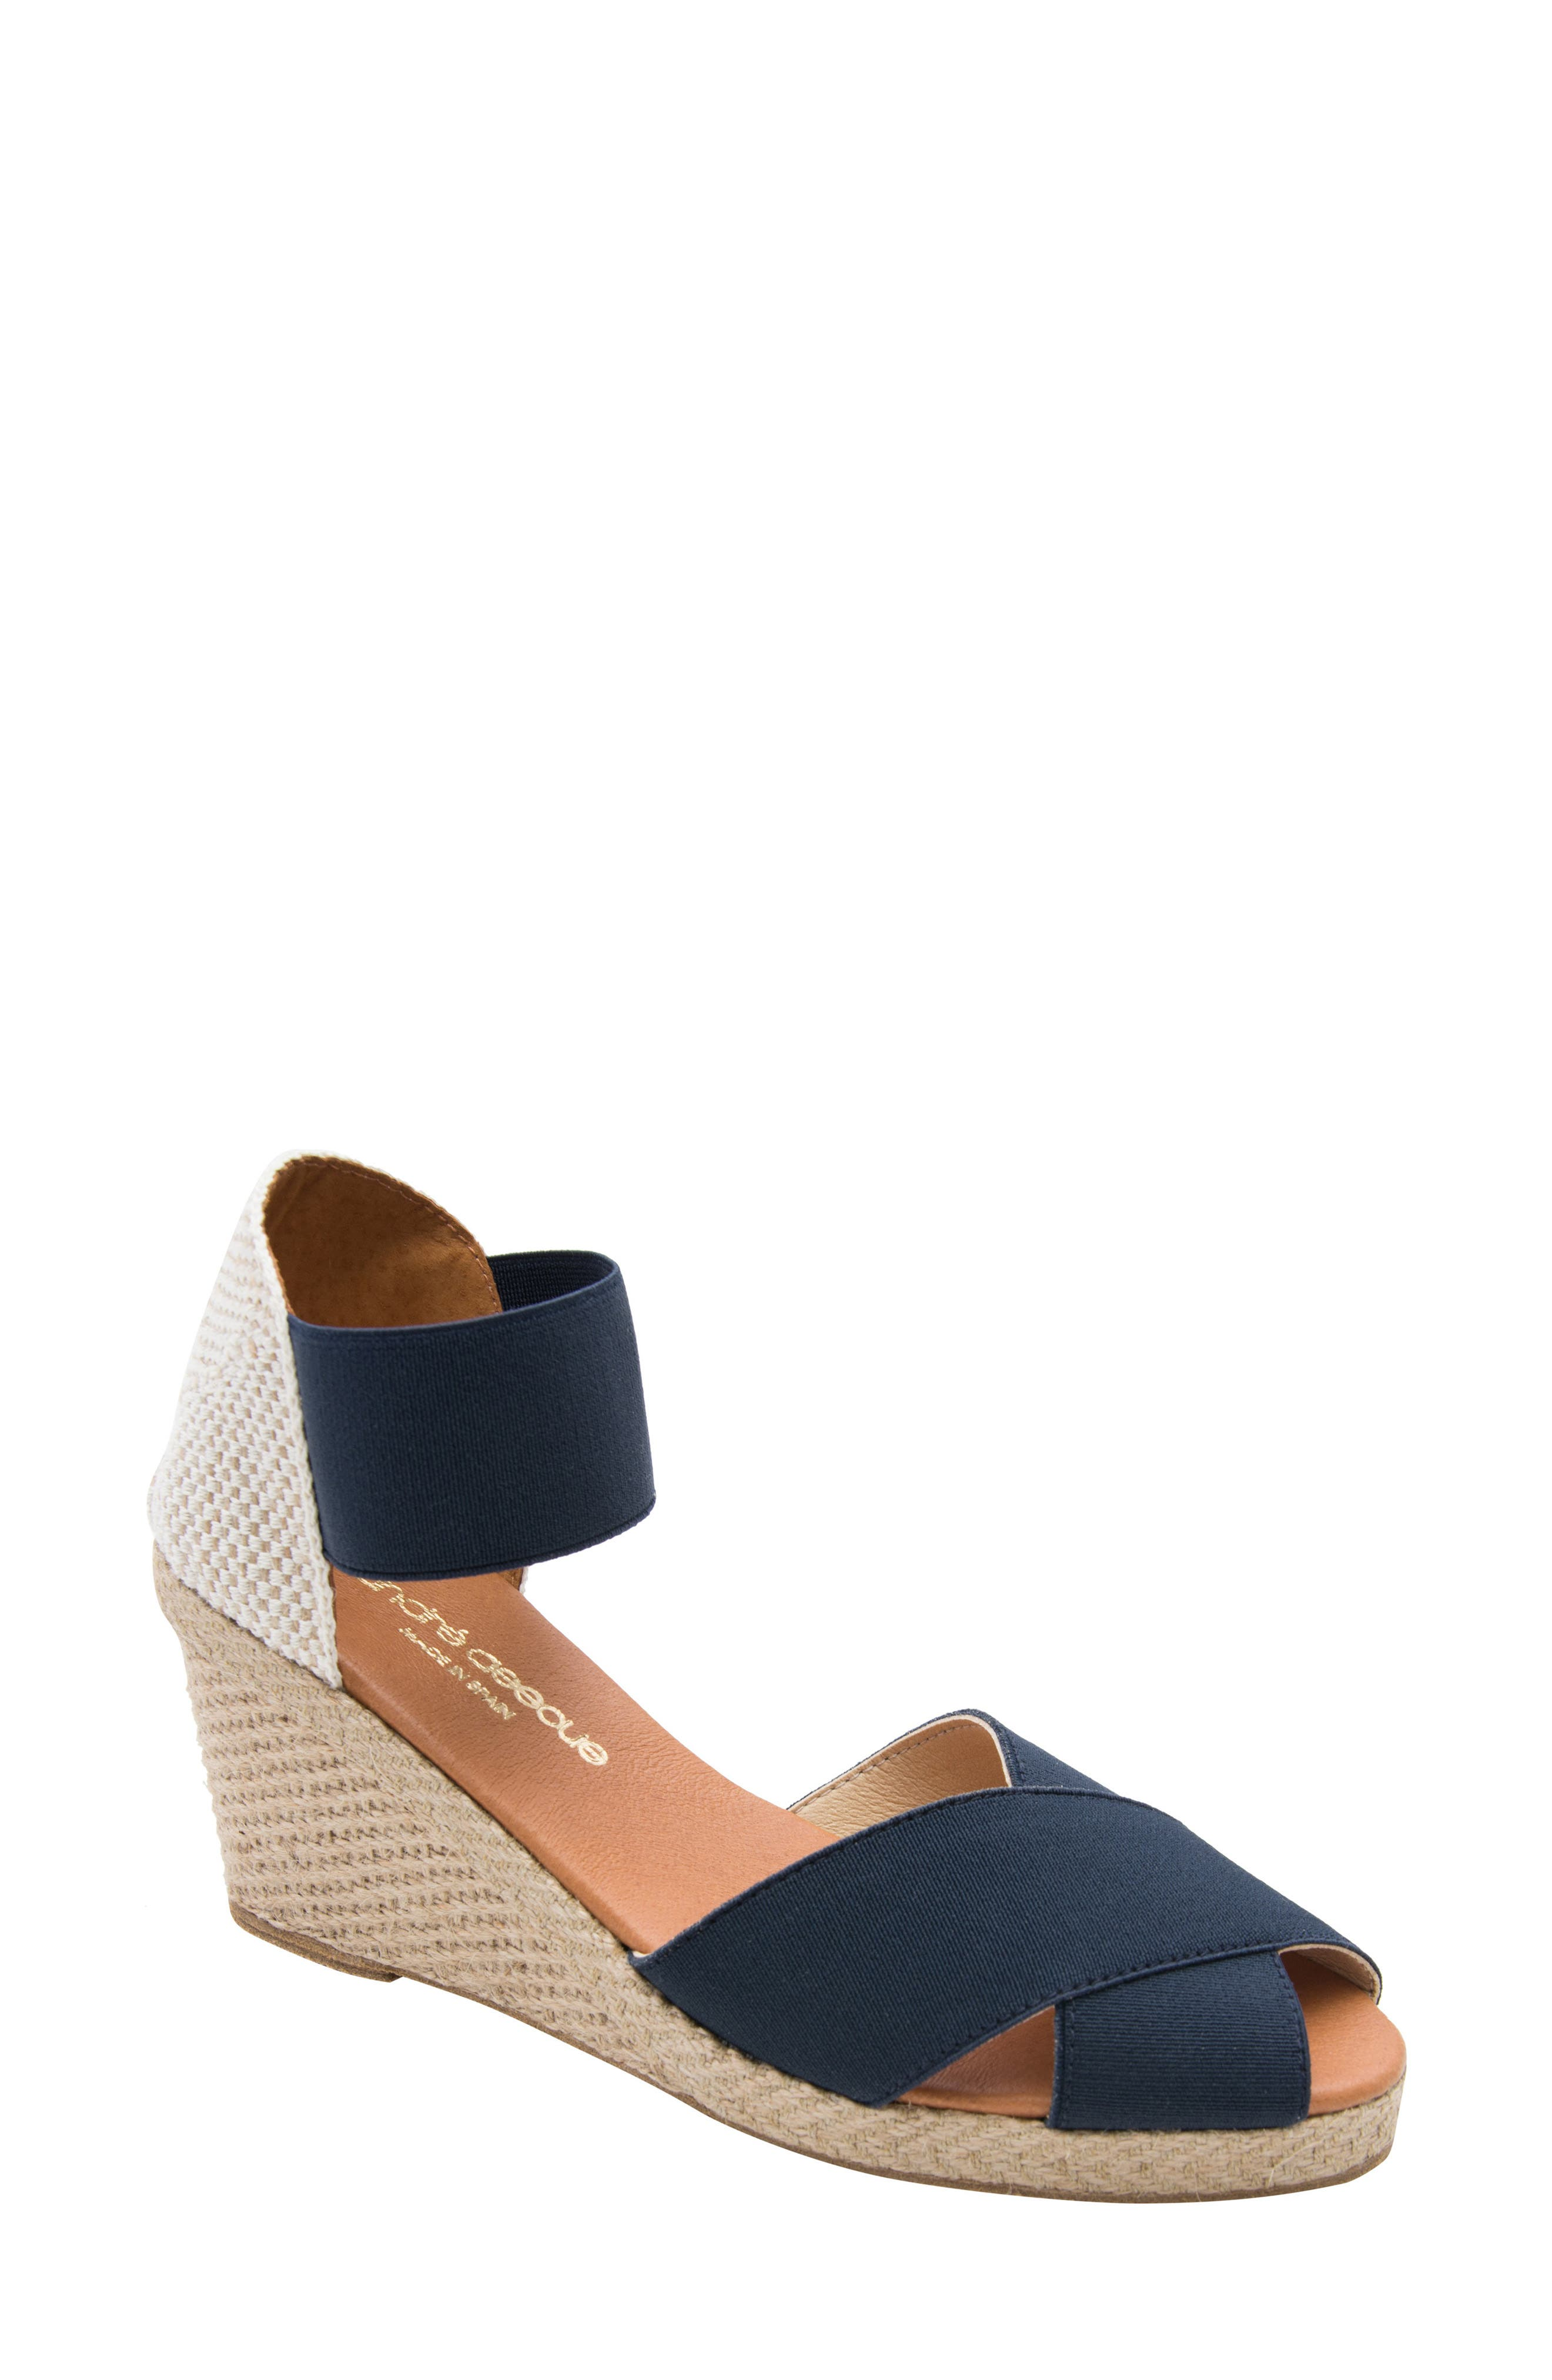 ANDRE ASSOUS Erika Espadrille Wedge in Navy Fabric